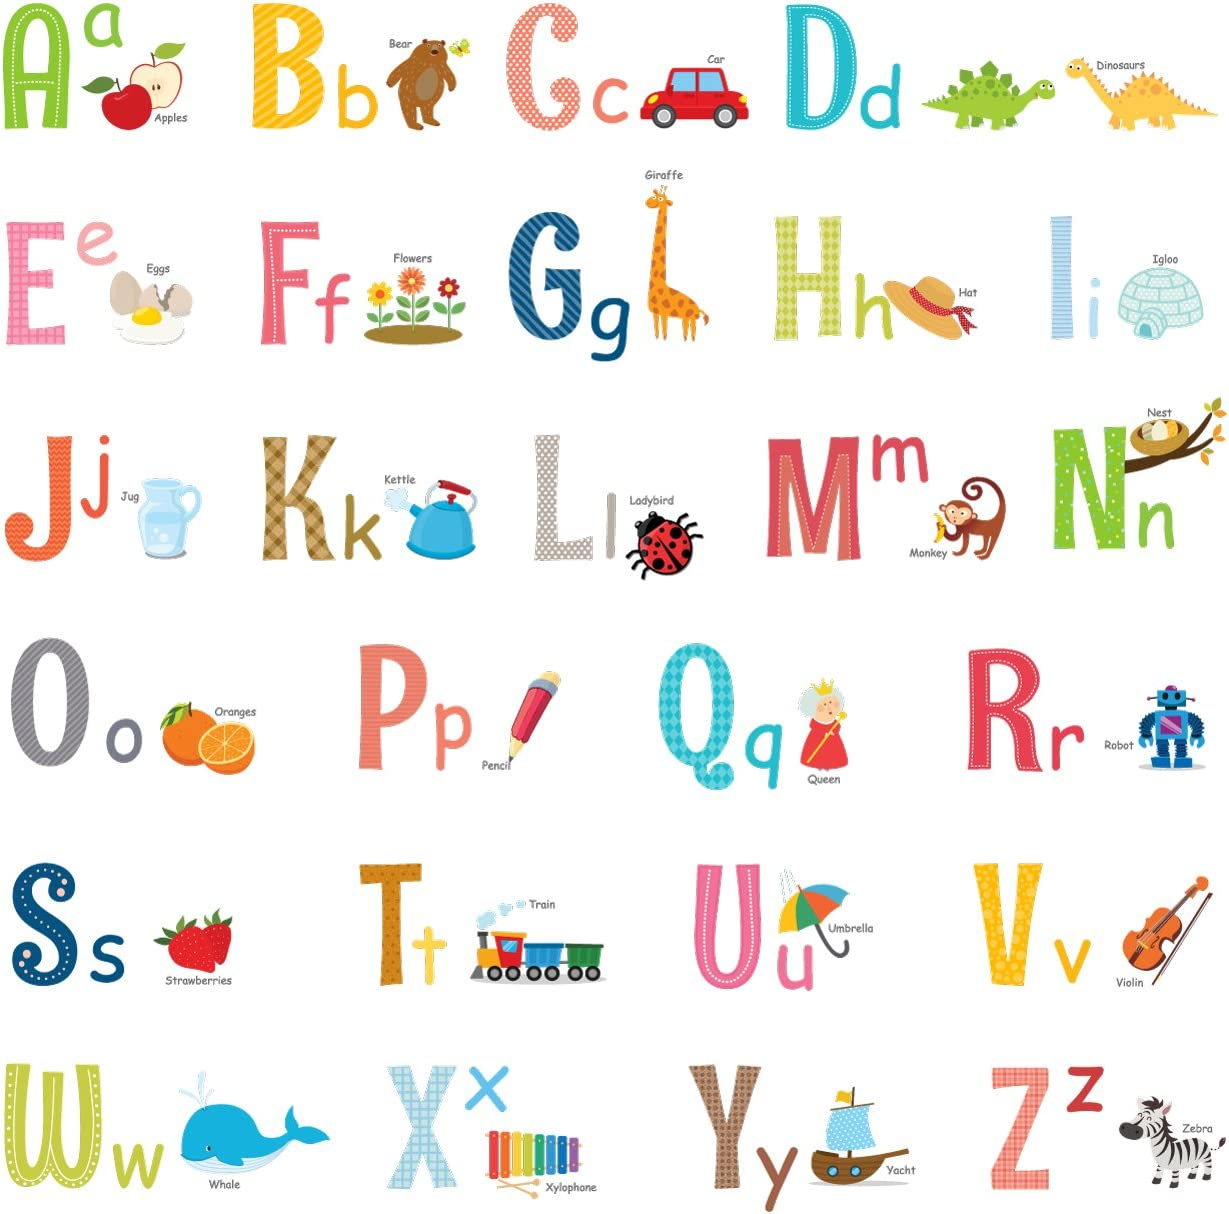 DECOWALL DW-1701S Alphabet ABC with Pictures Kids Wall Stickers Wall Decals Peel and Stick Removable Wall Stickers for Kids Nursery Bedroom Living Room (Medium) décor